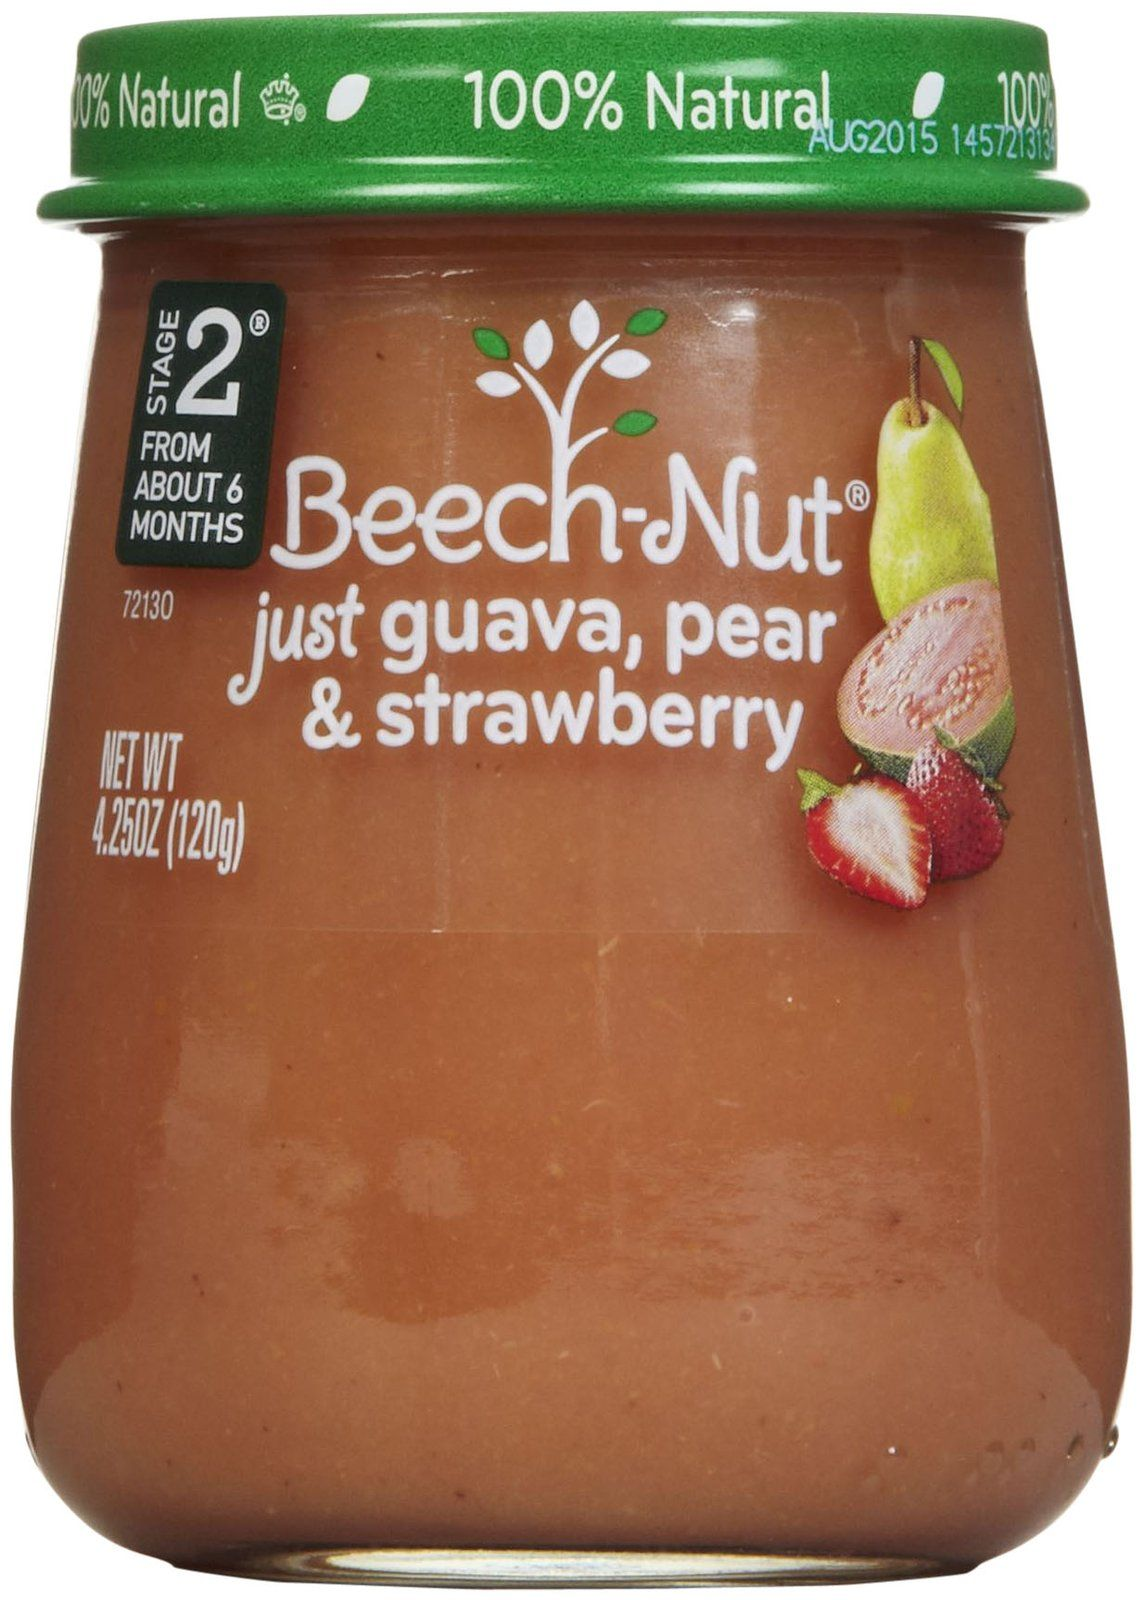 Beechnut stage 2 just purees guava pear strawberry